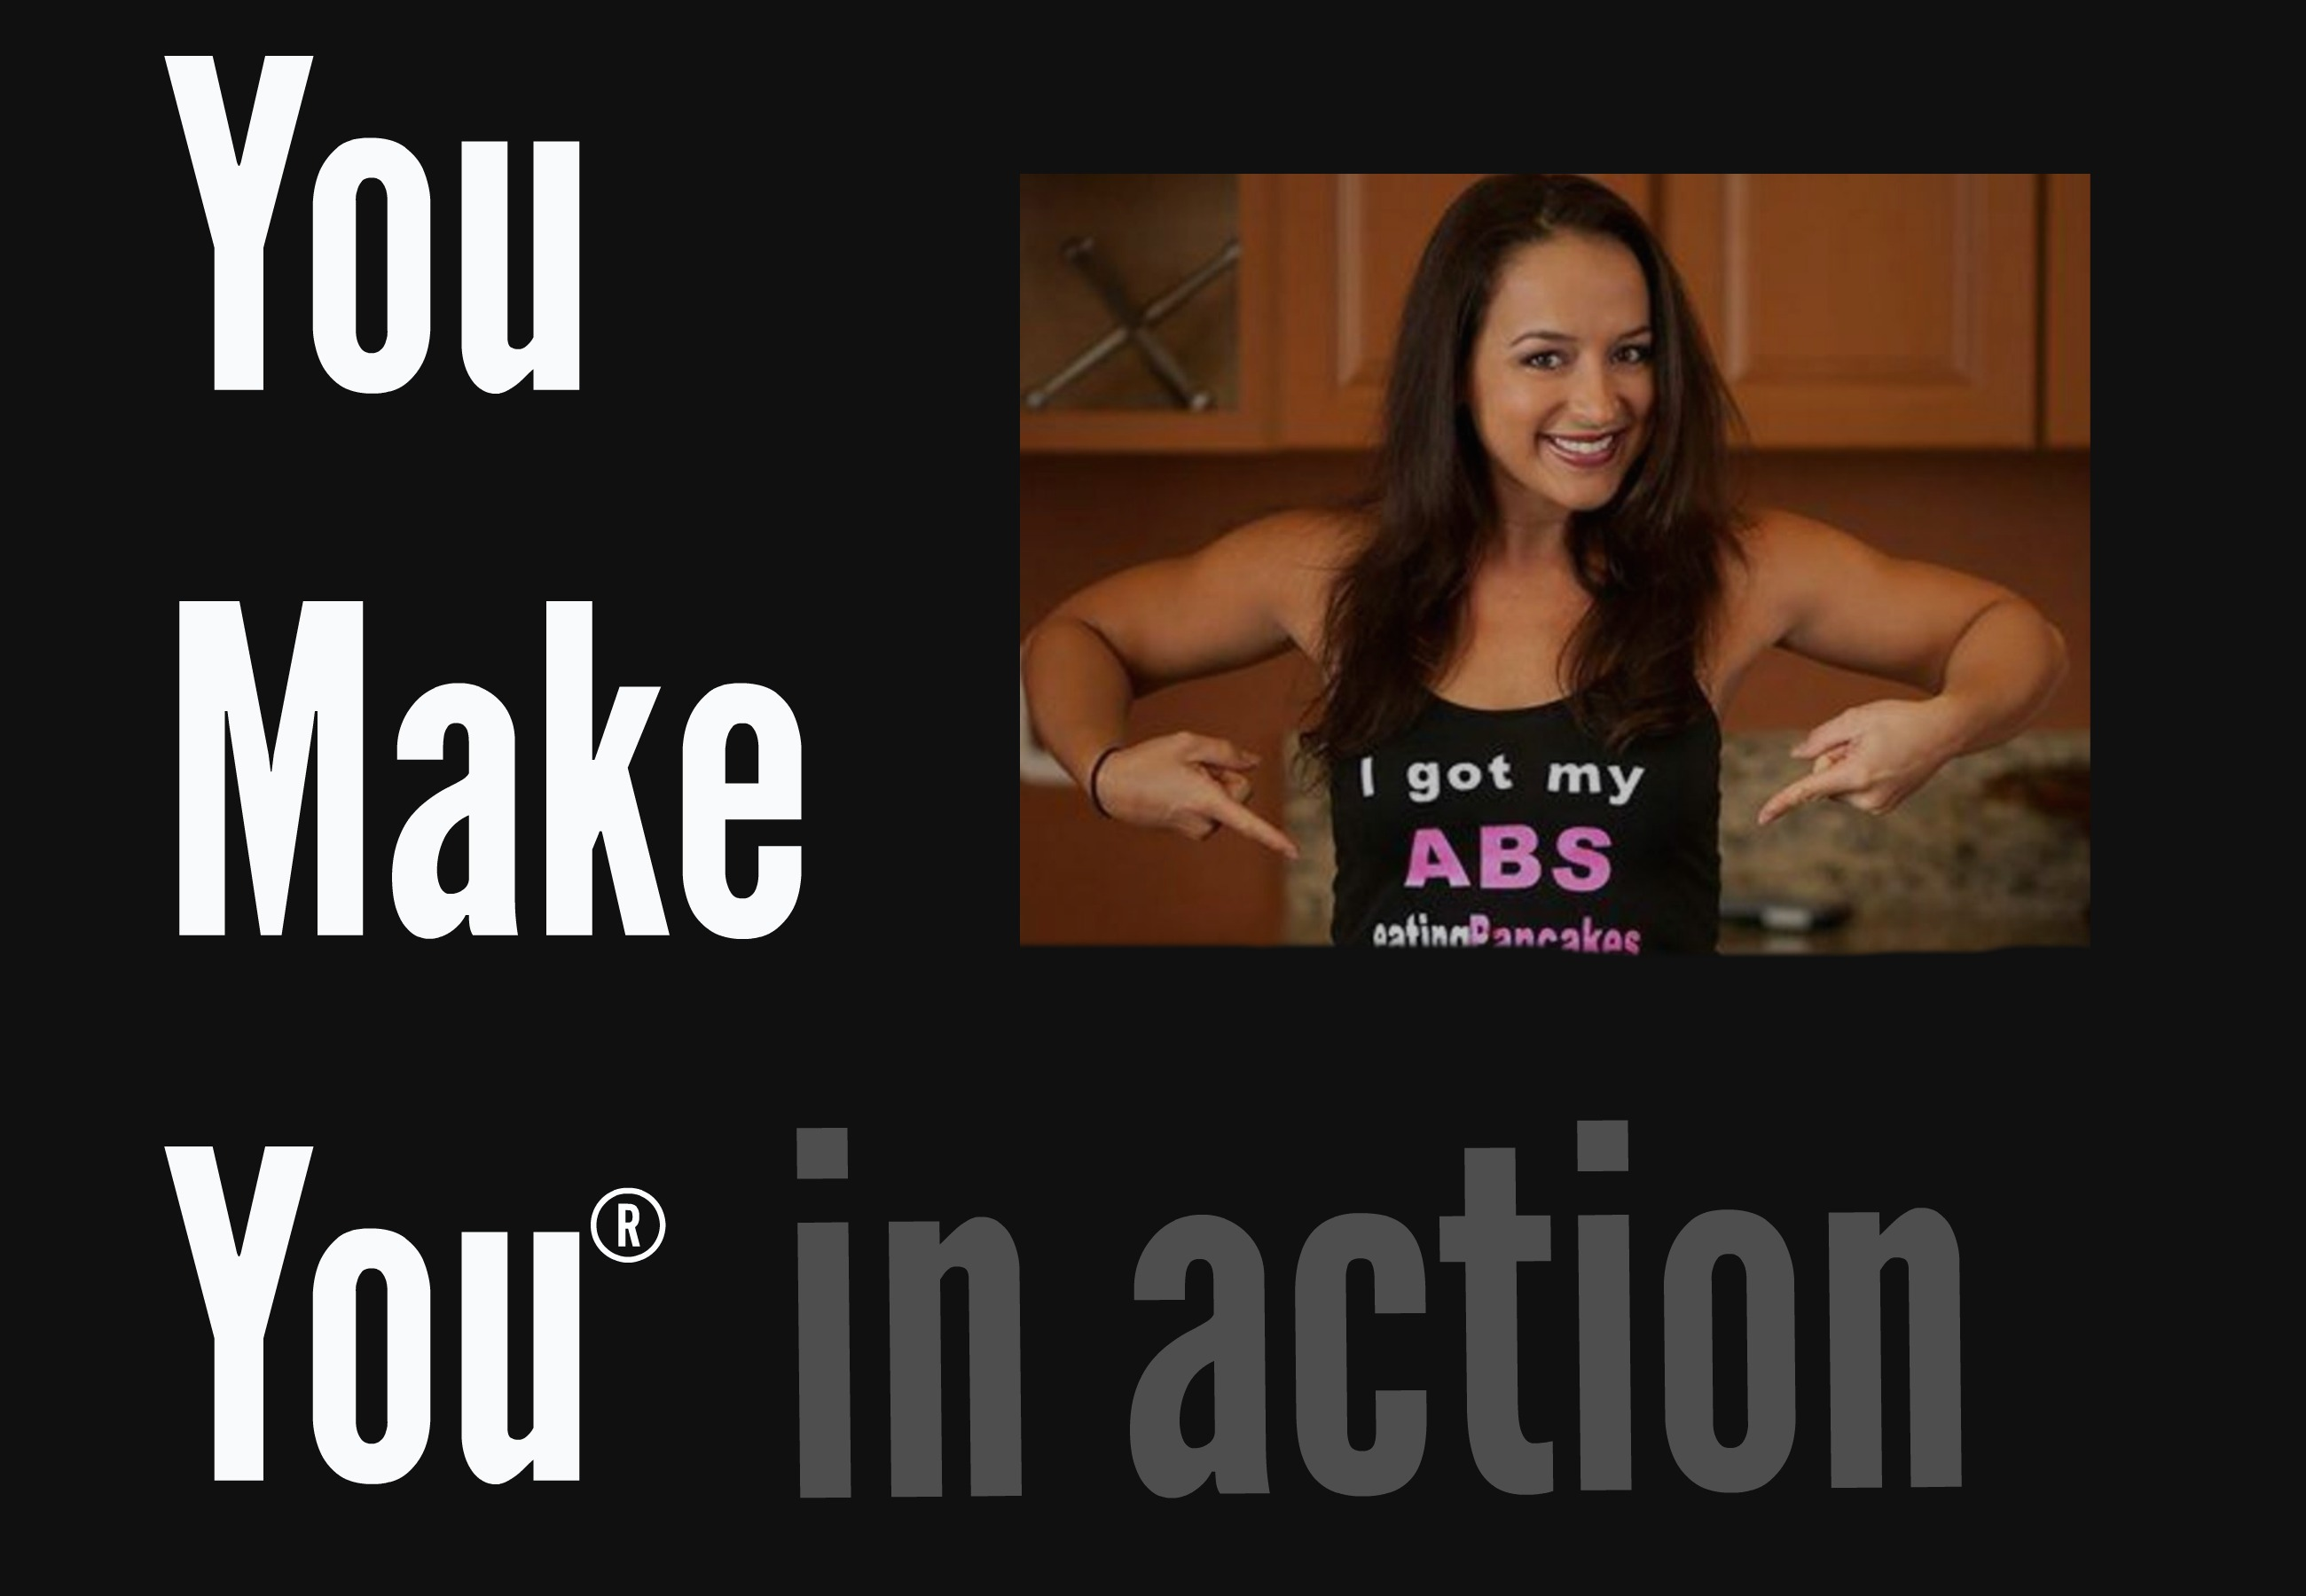 YouMakeYou In Action: Ashley Drummonds